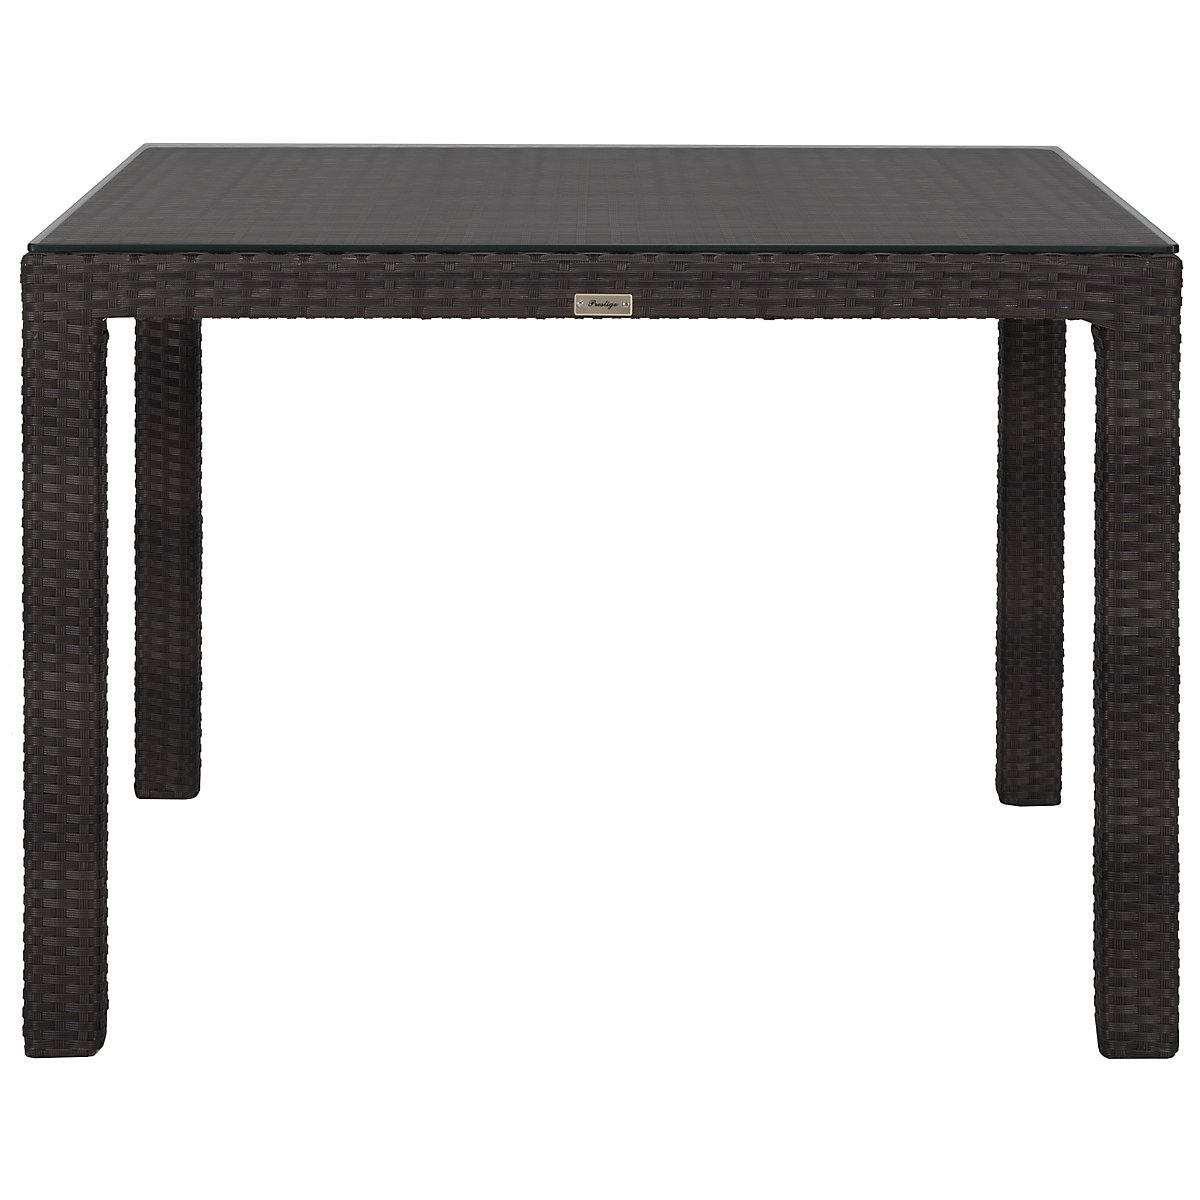 Zen Dark Tone Woven Square Table